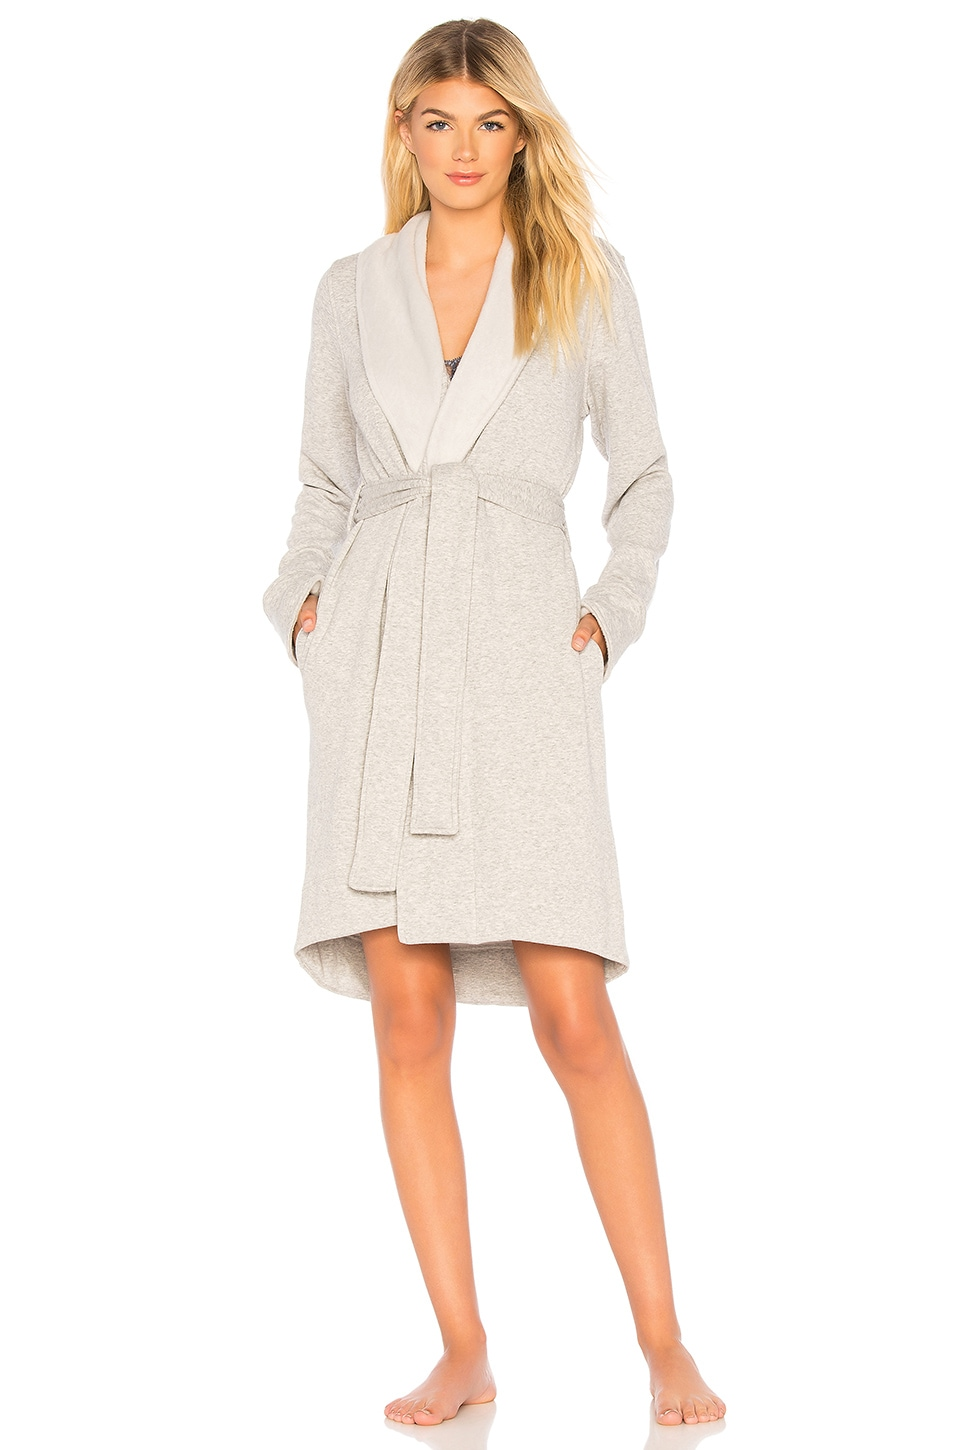 UGG Blanchie II Robe in Seal Heather